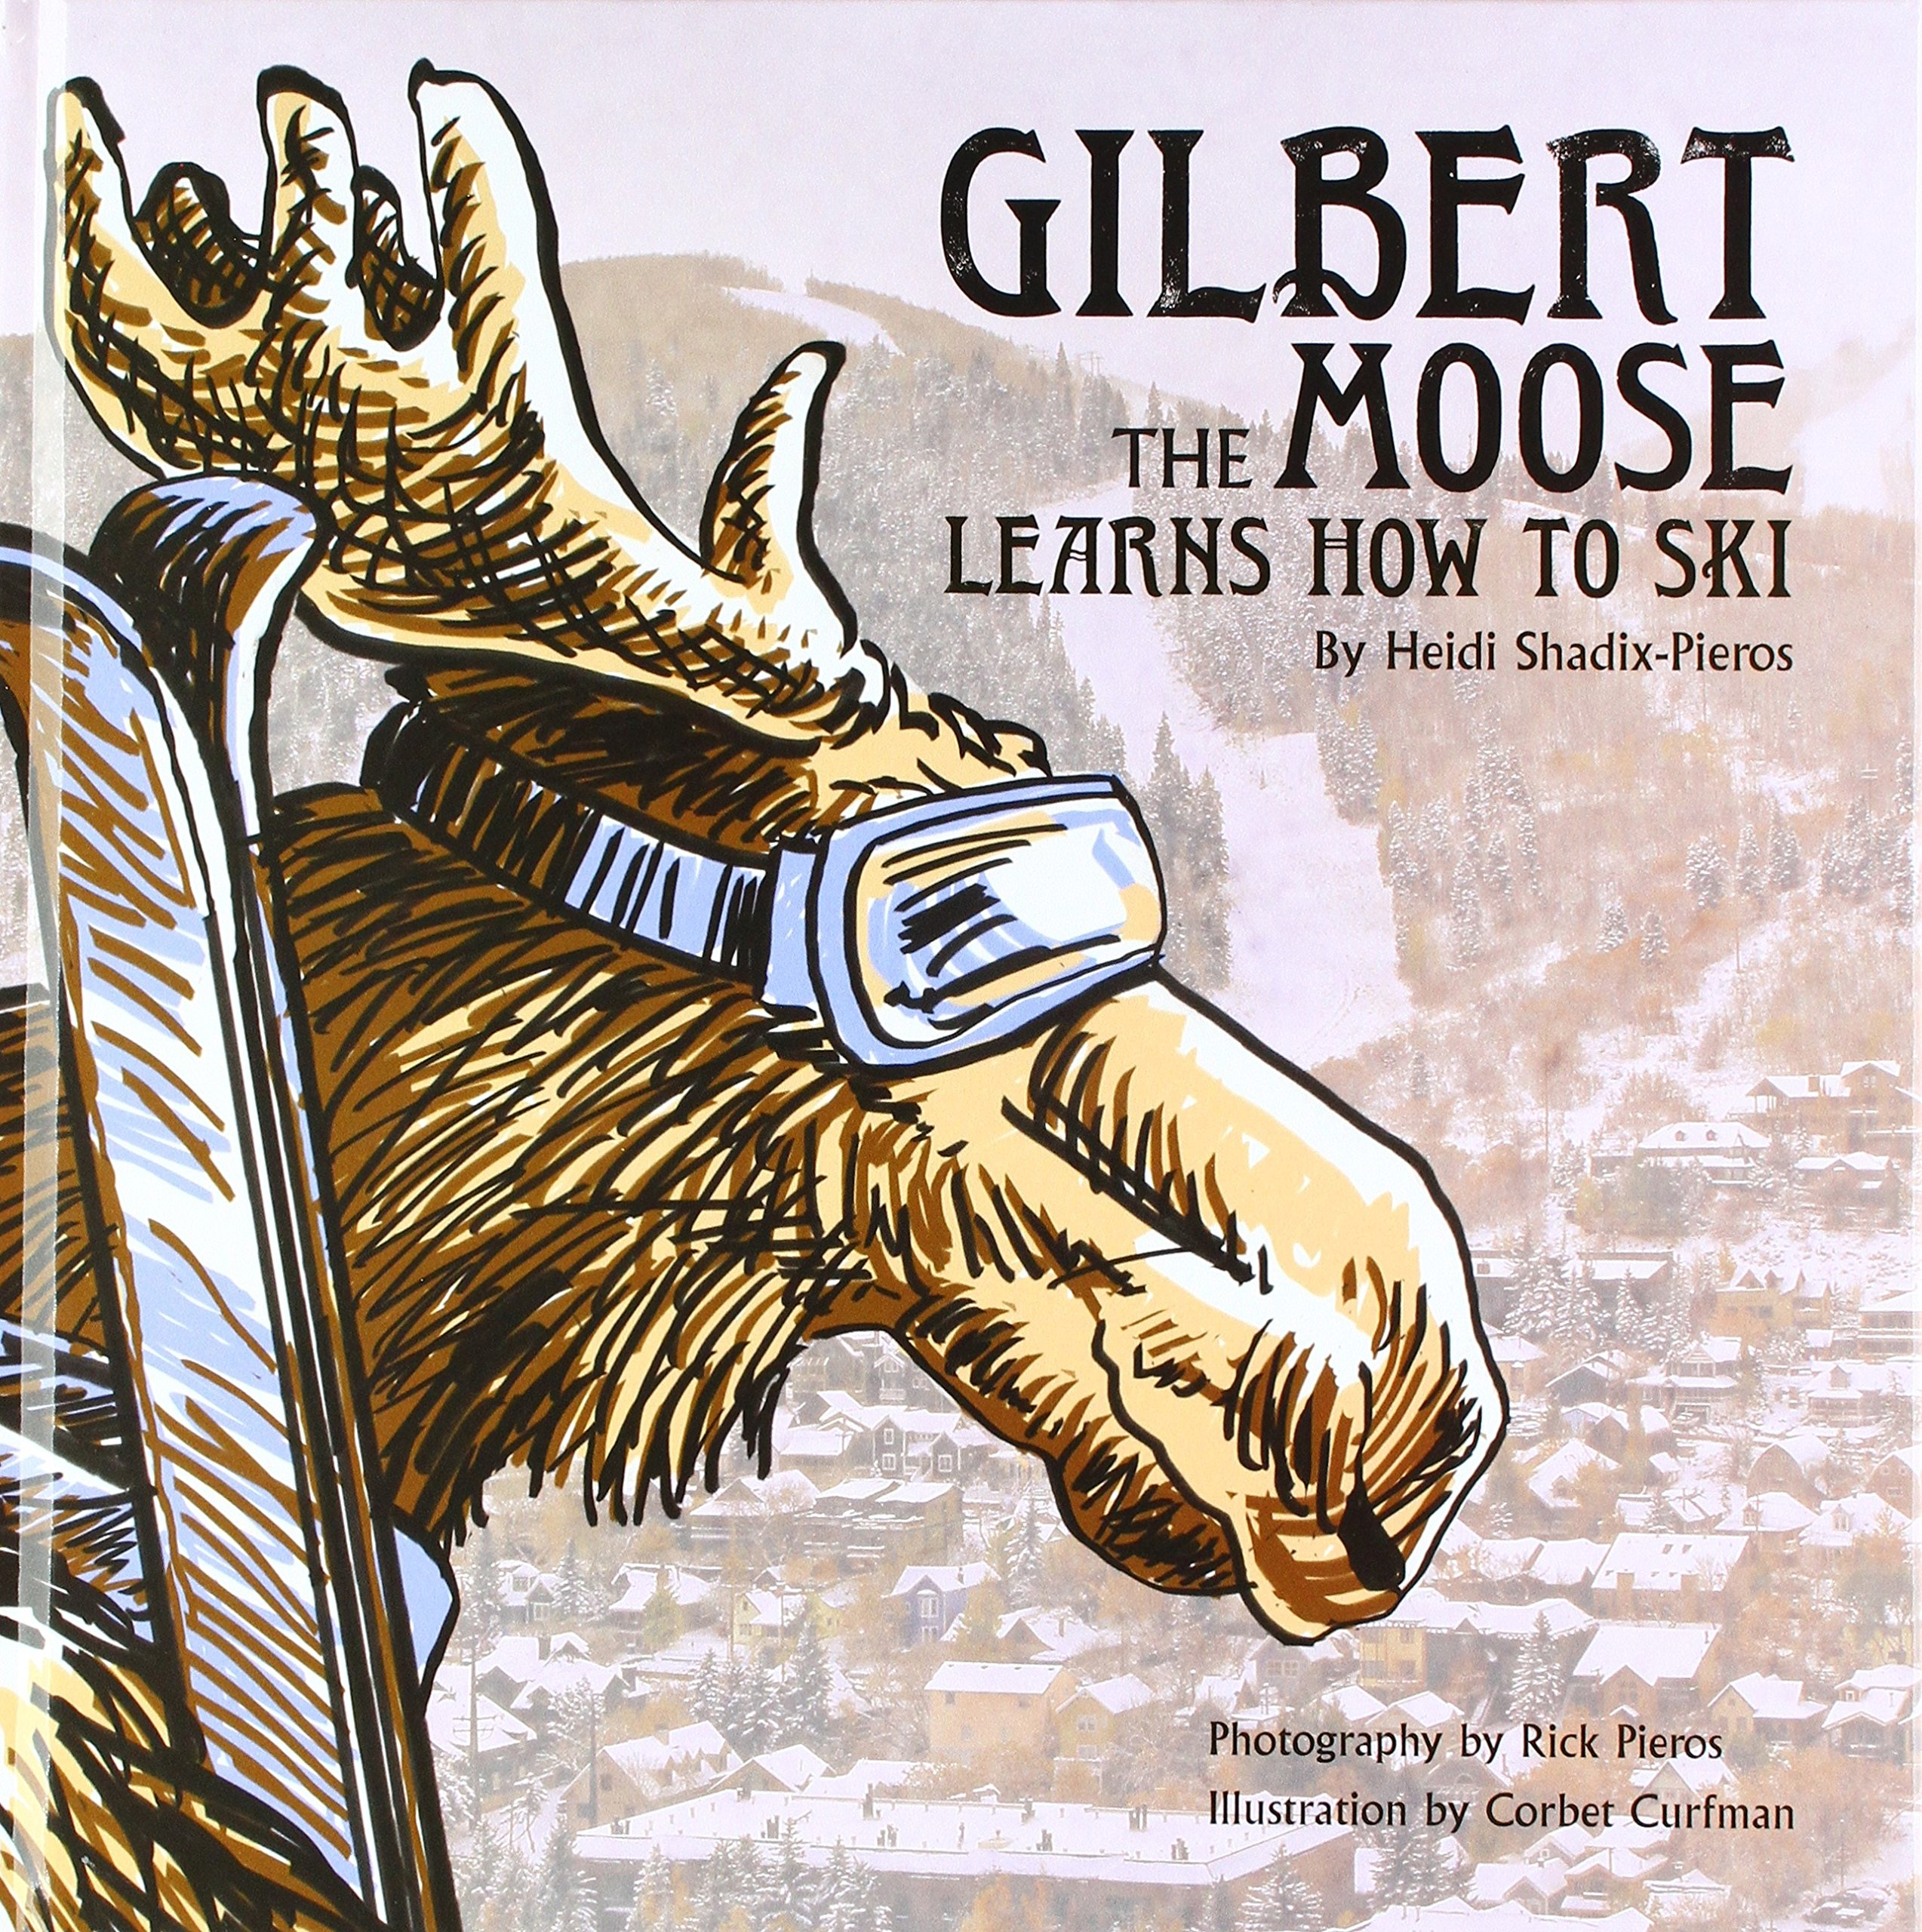 Gilbert the Moose Learns How to Ski by Rick Pieros Photography (Image #1)